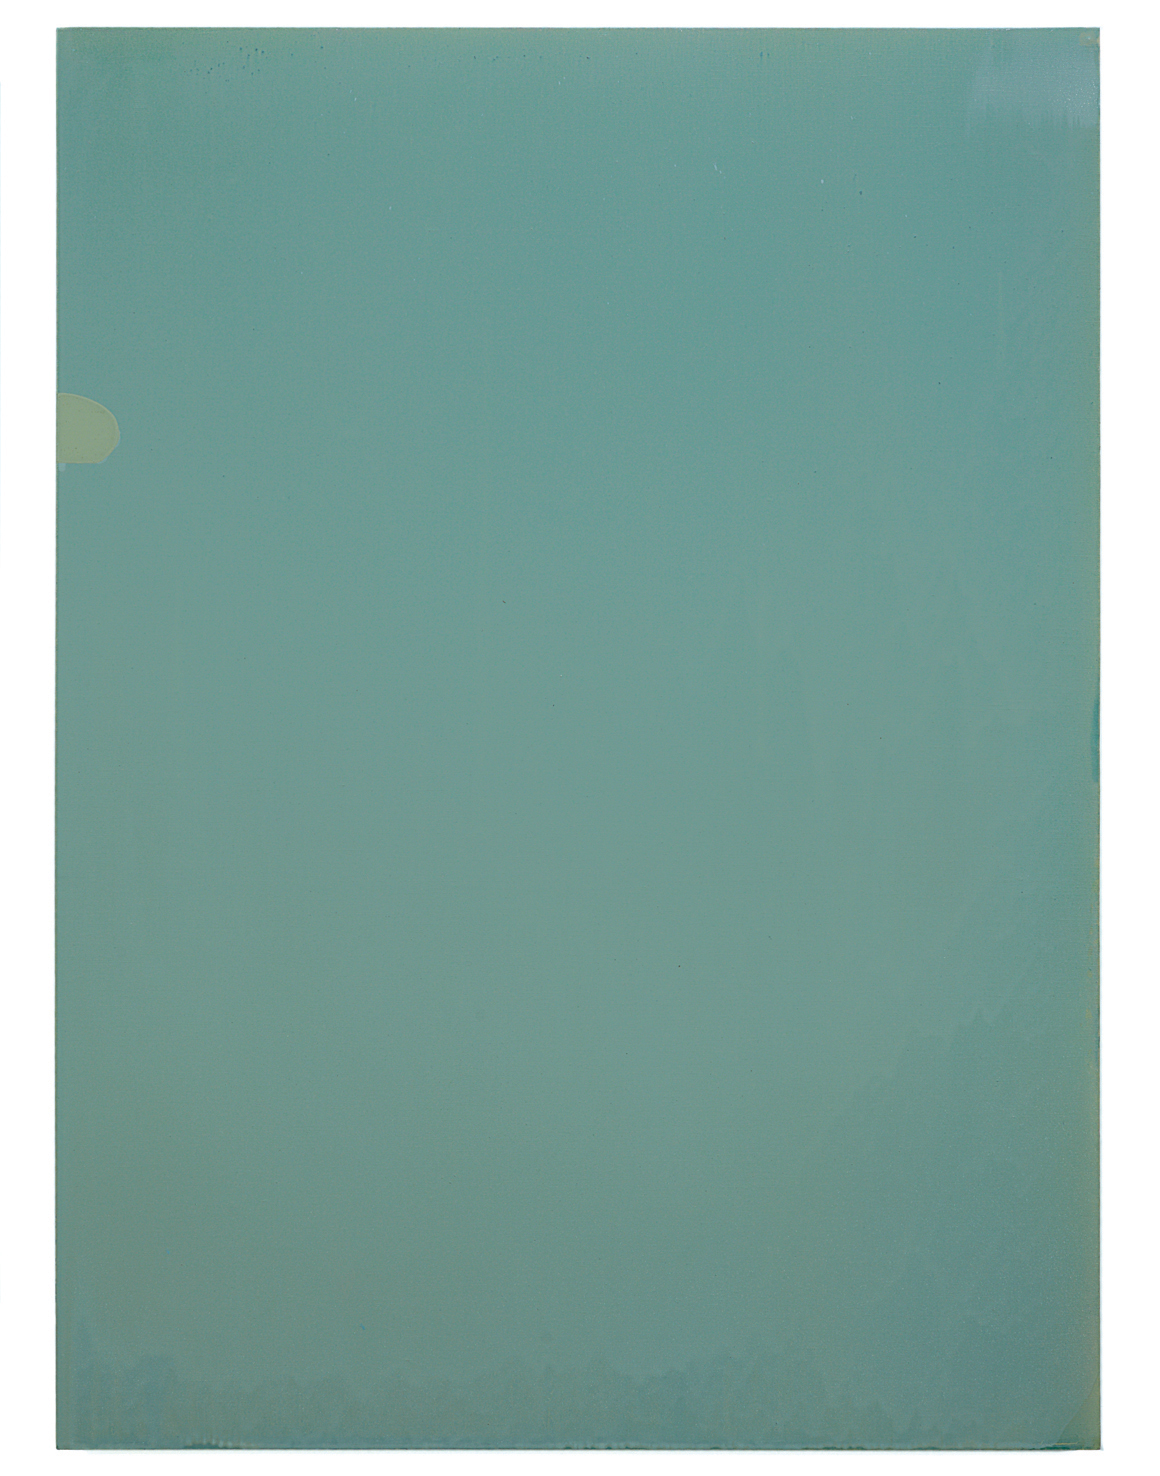 Luke HENG  Green on White  2015 Oil on linen H130 x W95 cm